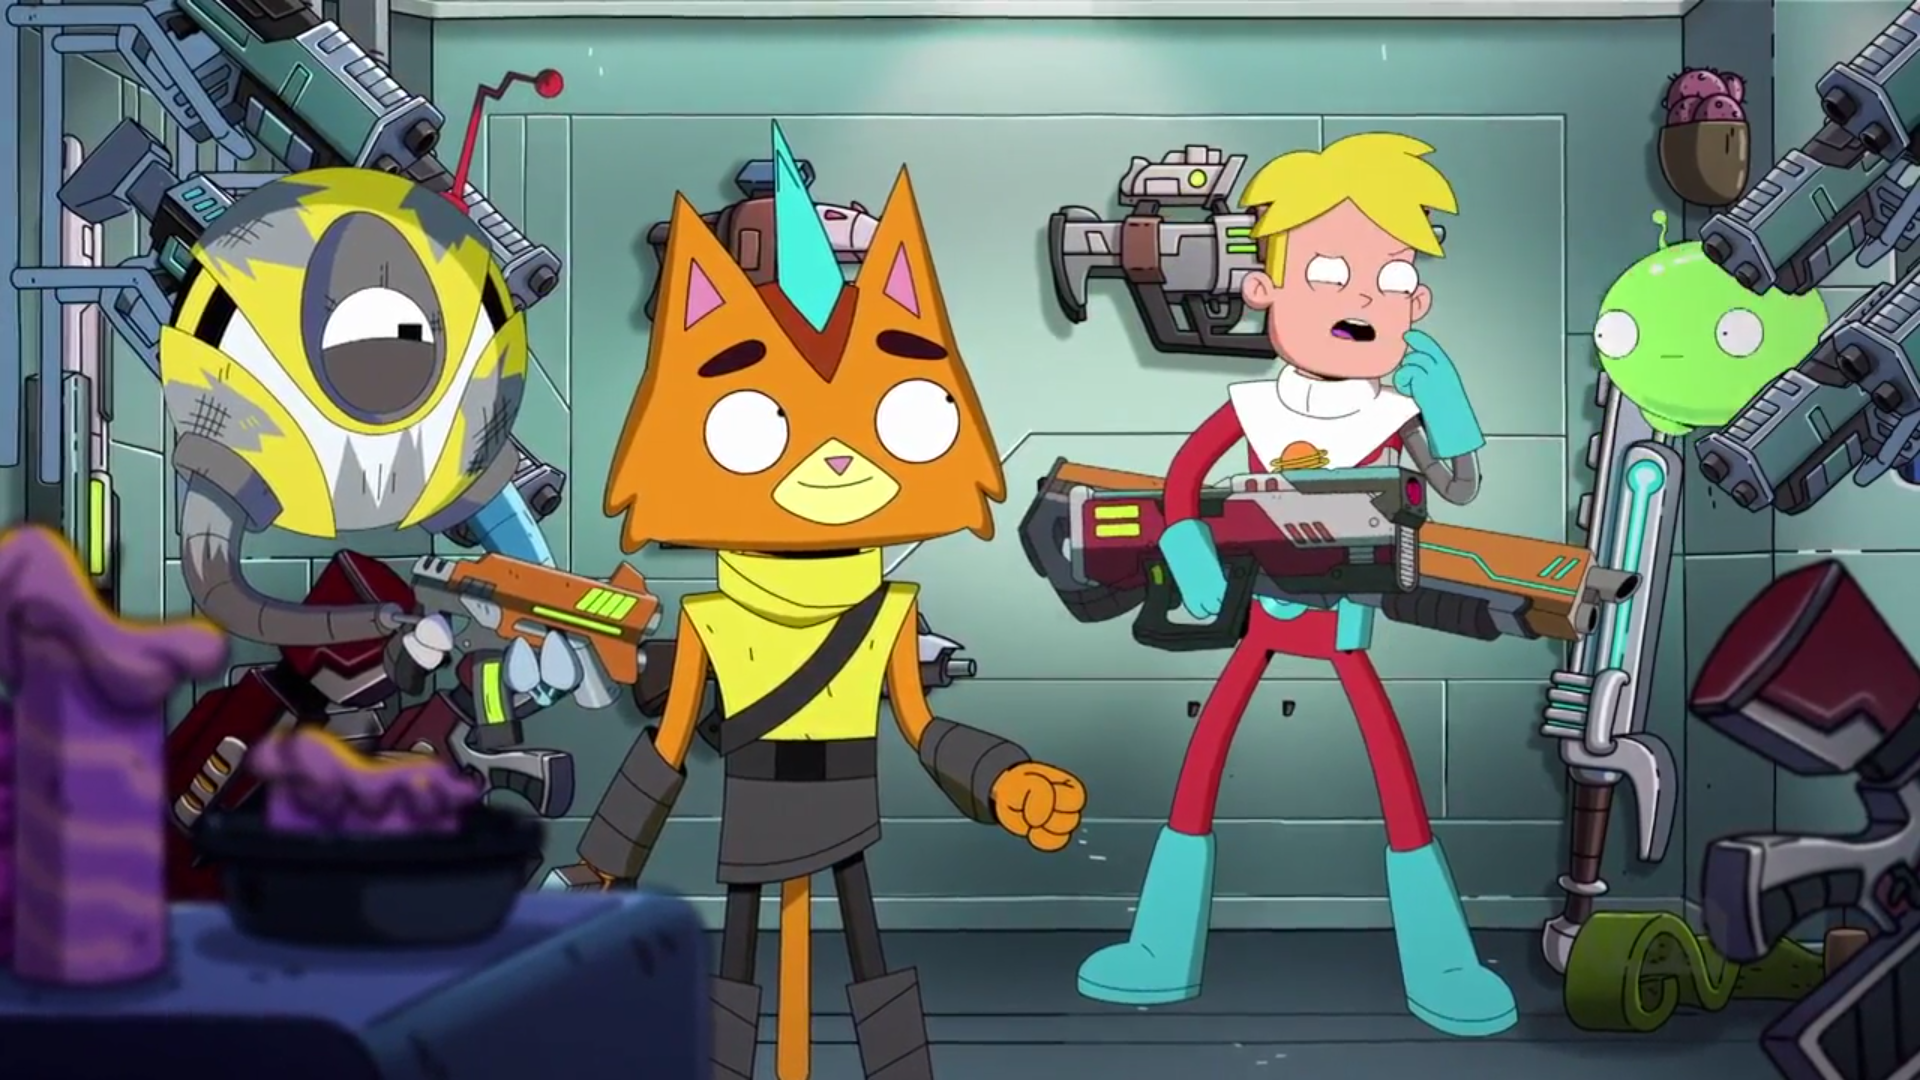 Chapter 7 final space wiki fandom powered by wikia - Final space wallpaper ...